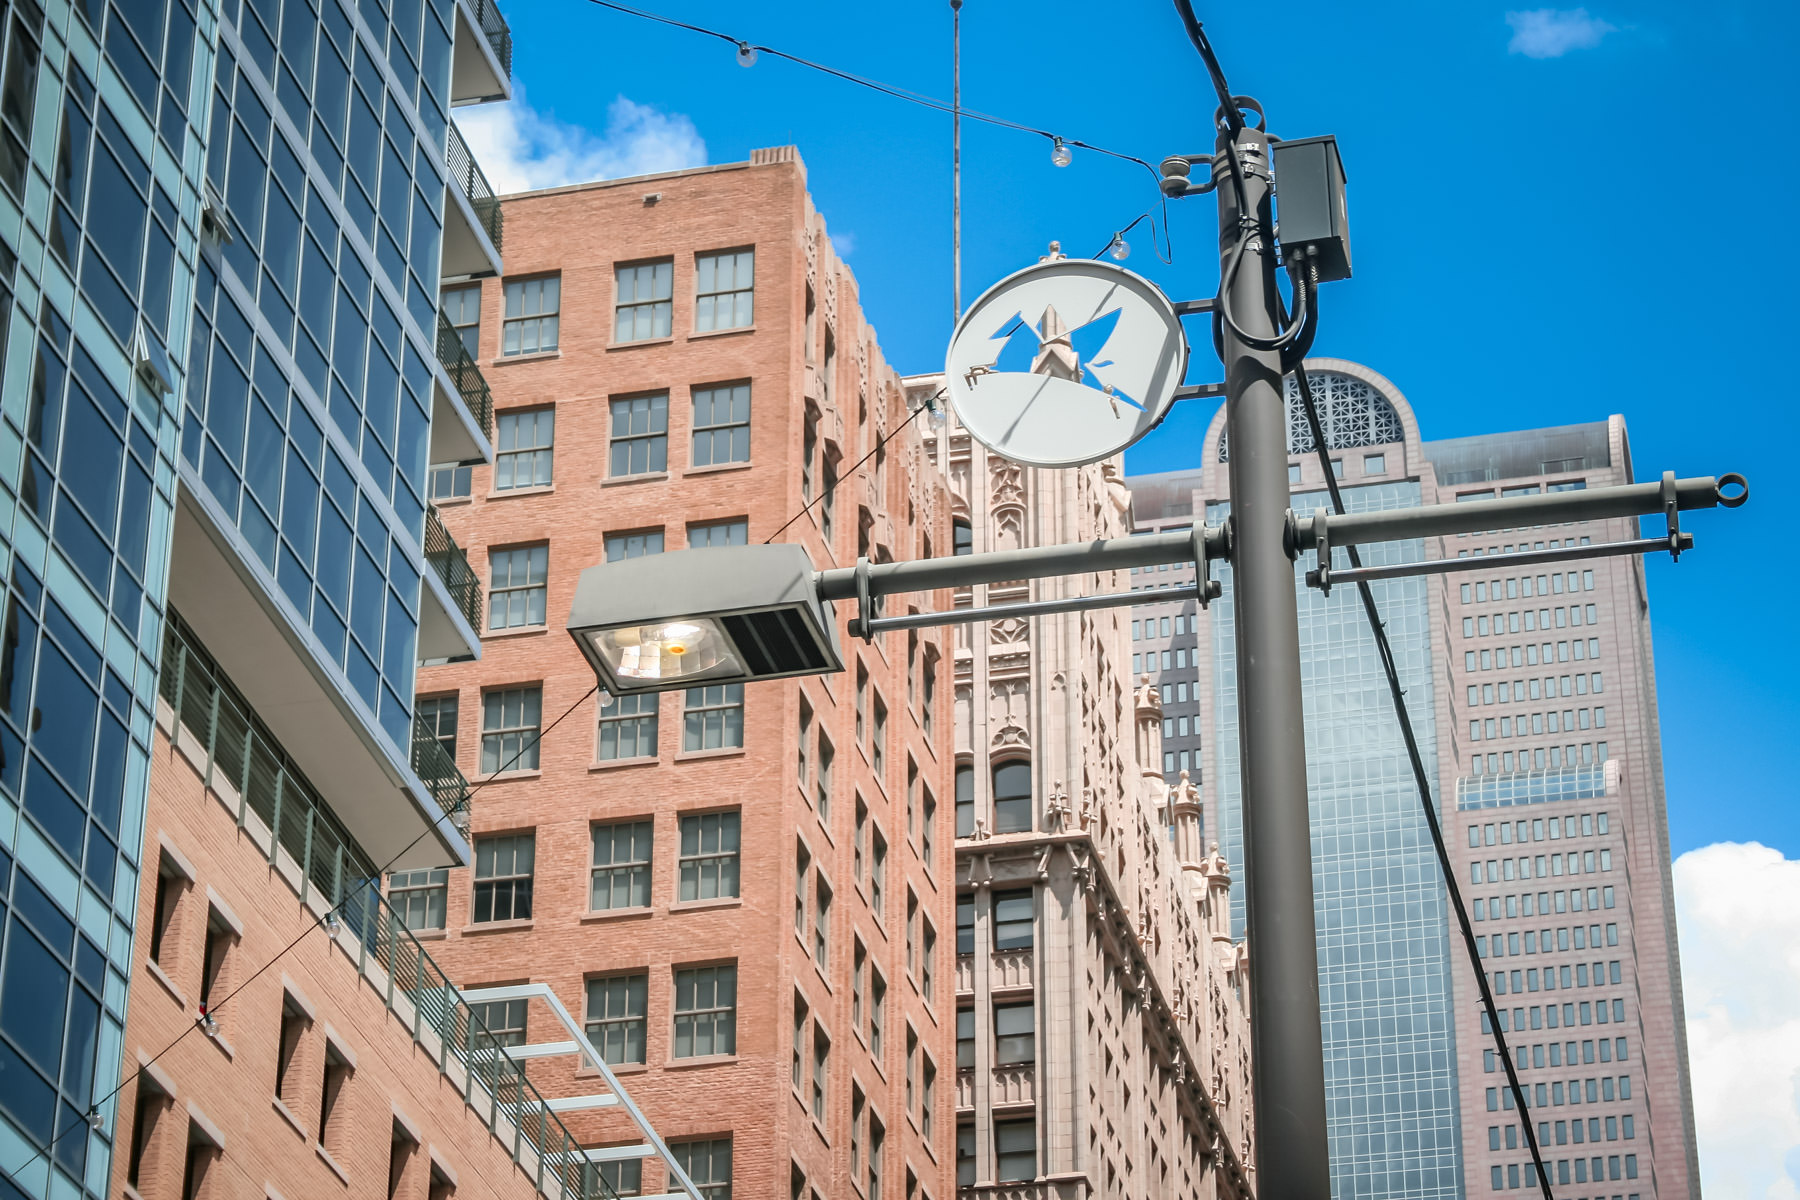 A cutout of a stylized Pegasus adorns this light pole in downtown Dallas.